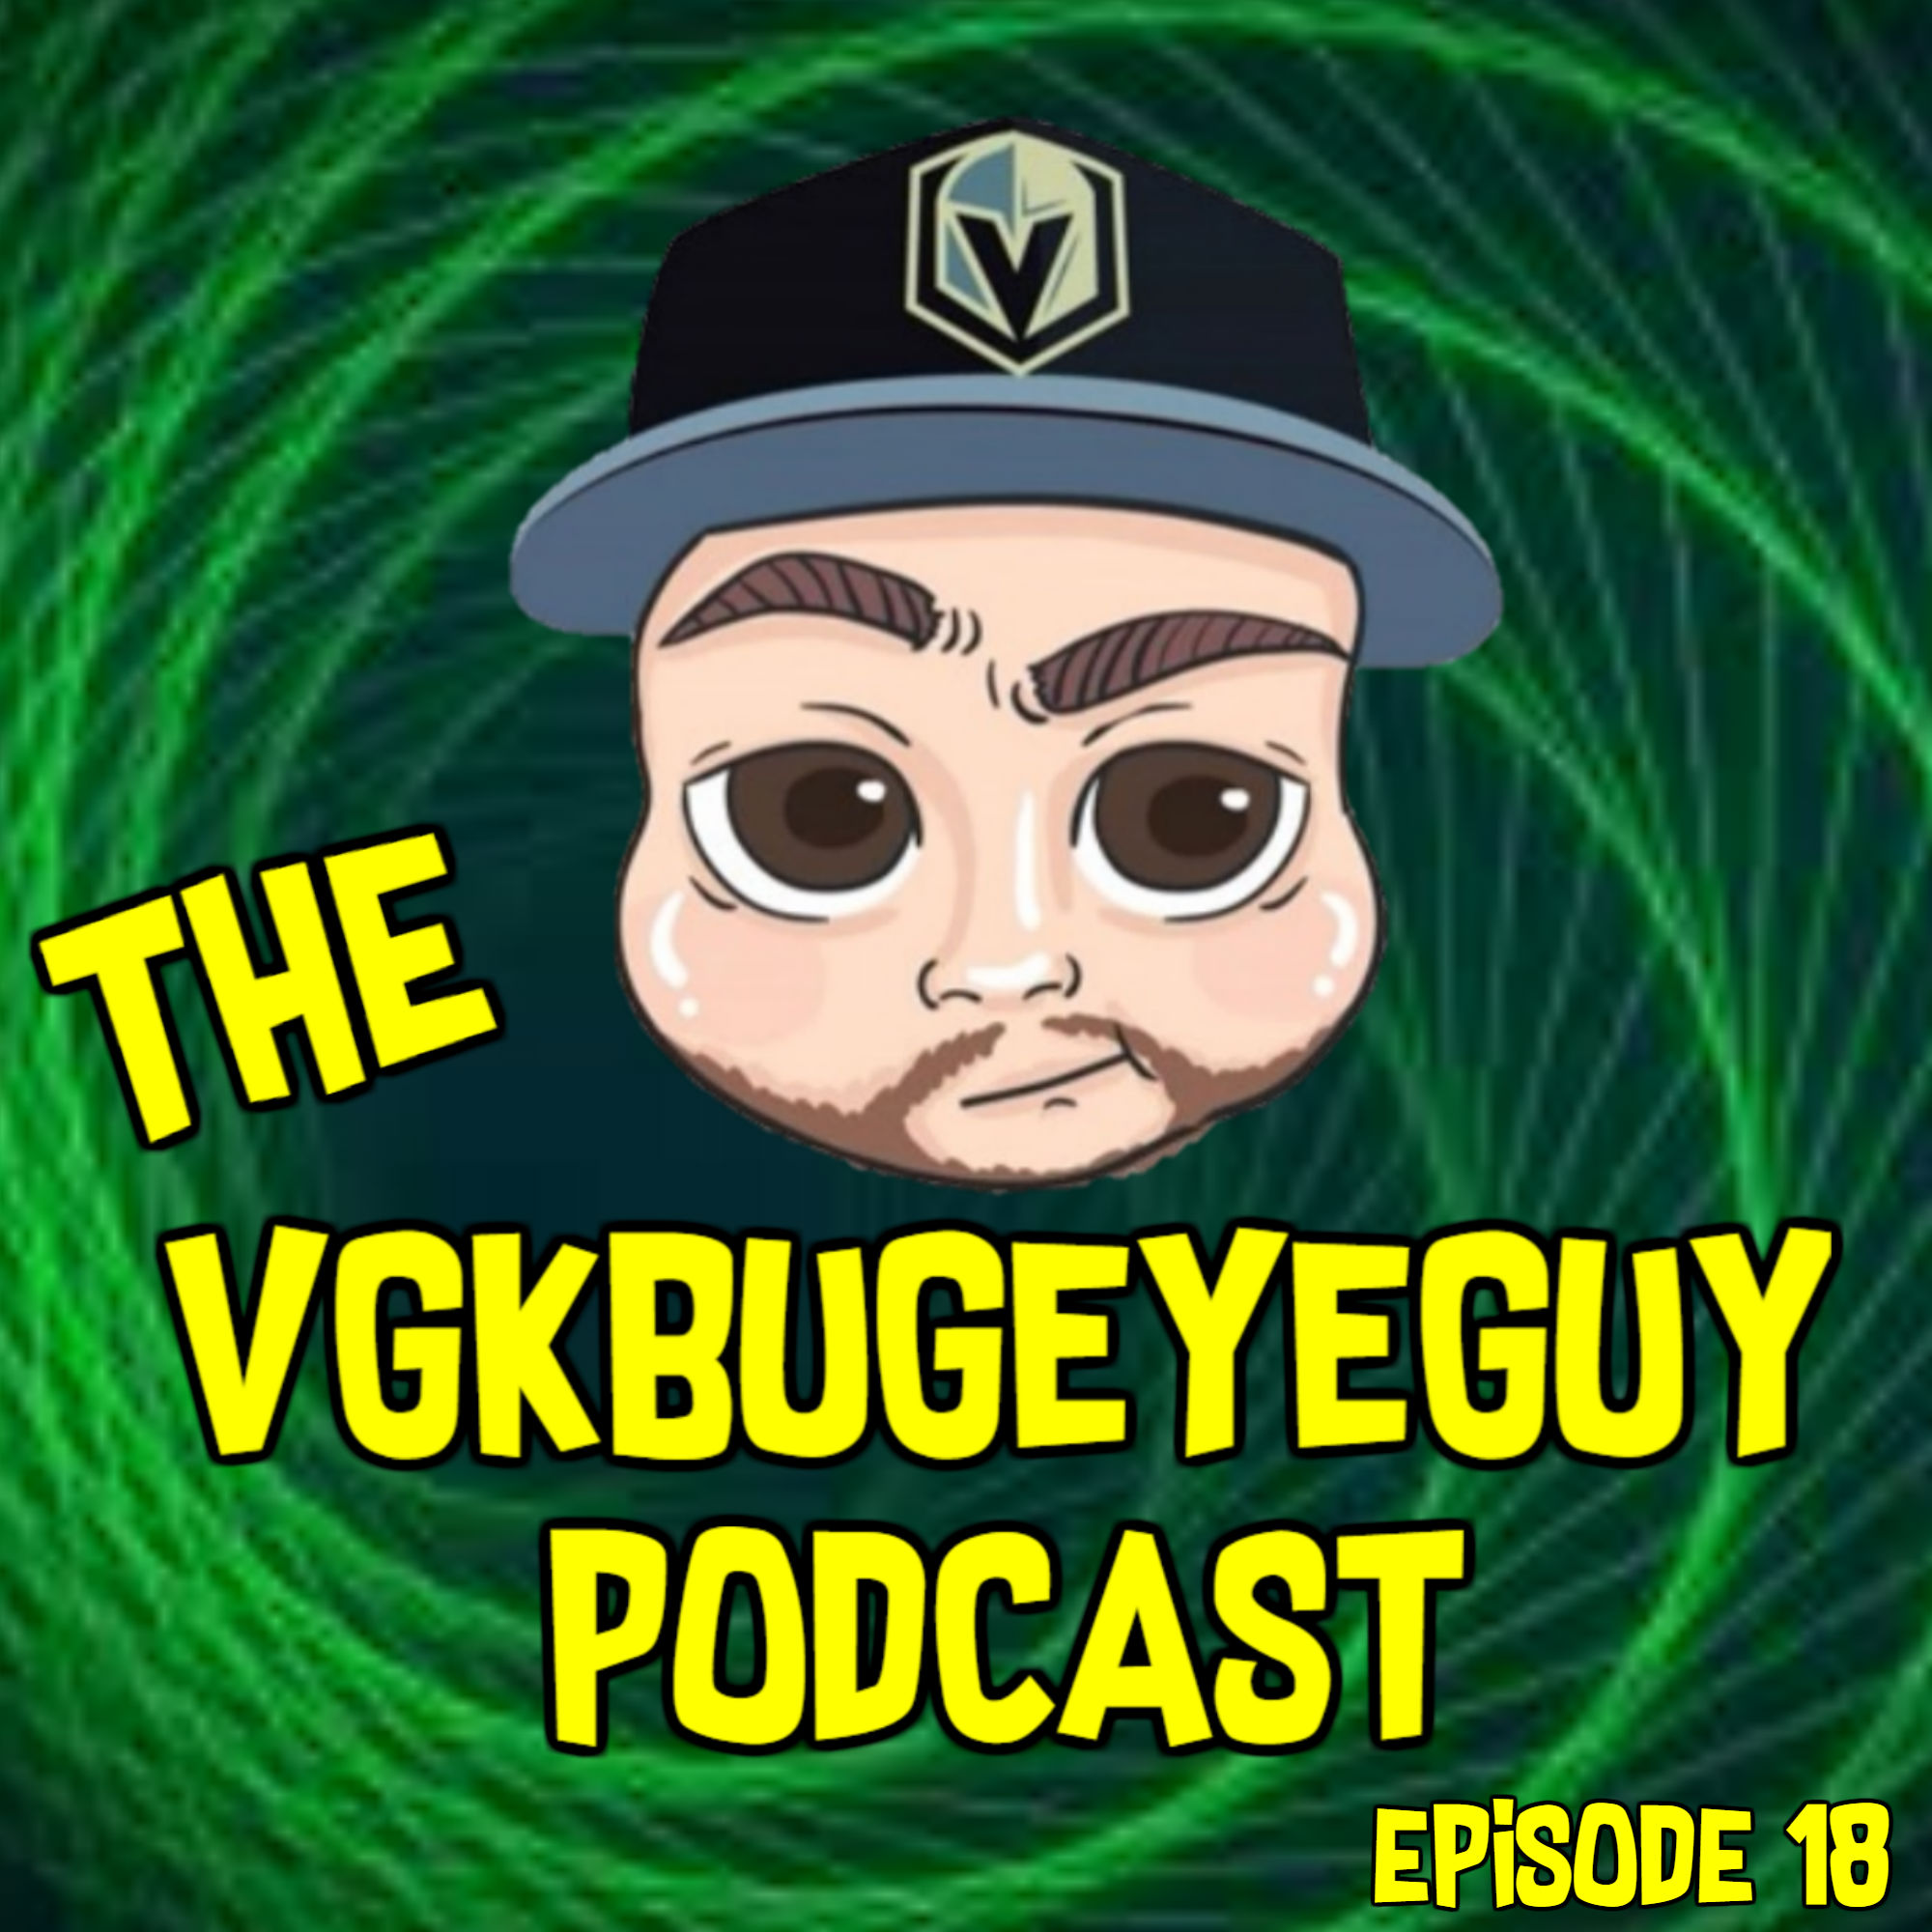 The VGKbugeyeGuy Podcast Episode 18